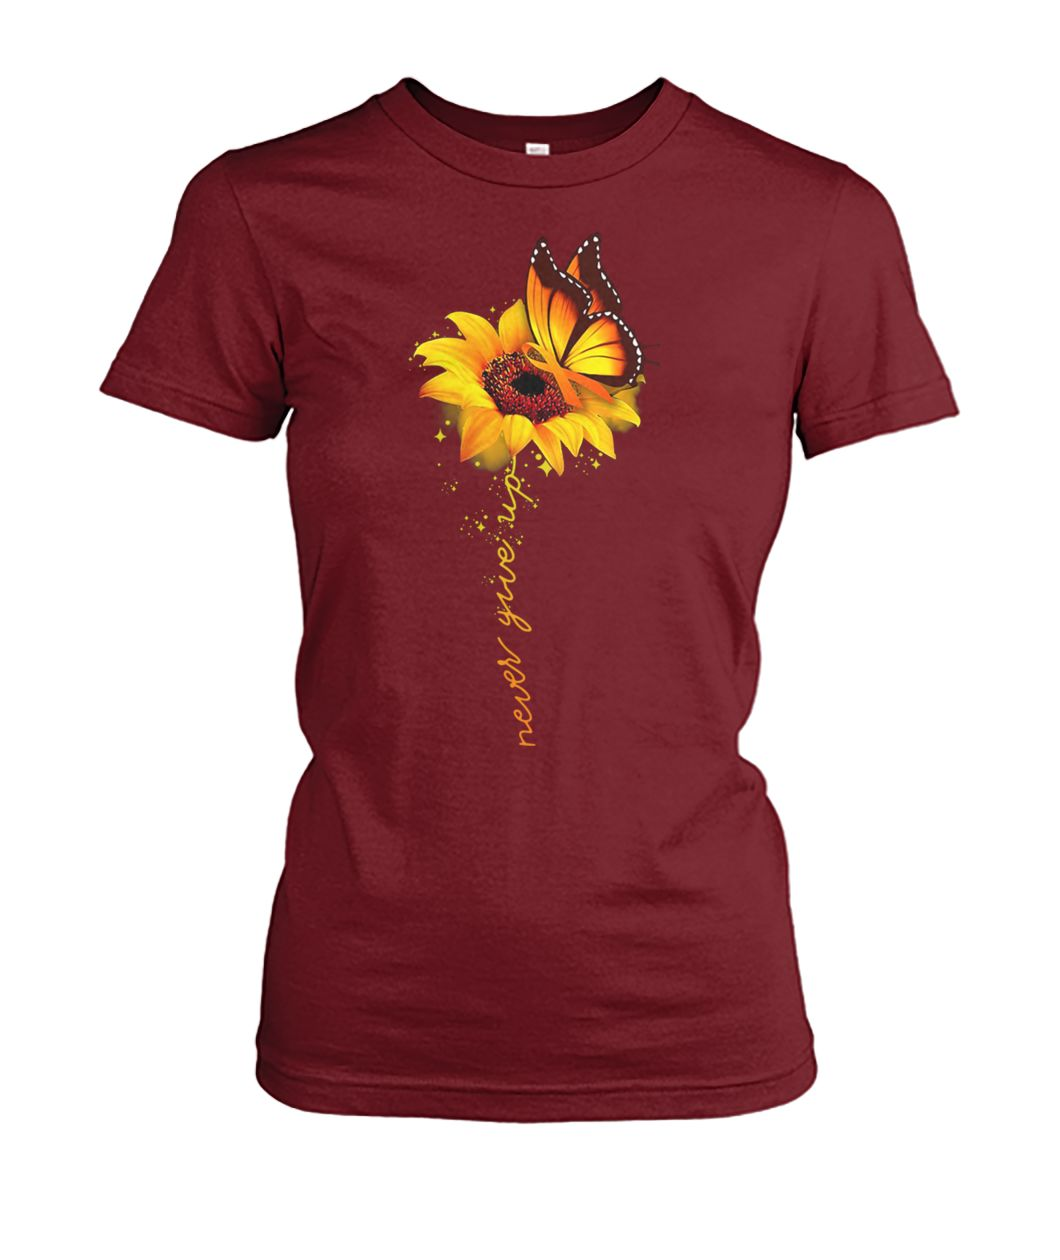 Sunflower butterfly never give up raise multiple sclerosis awareness women's crew tee